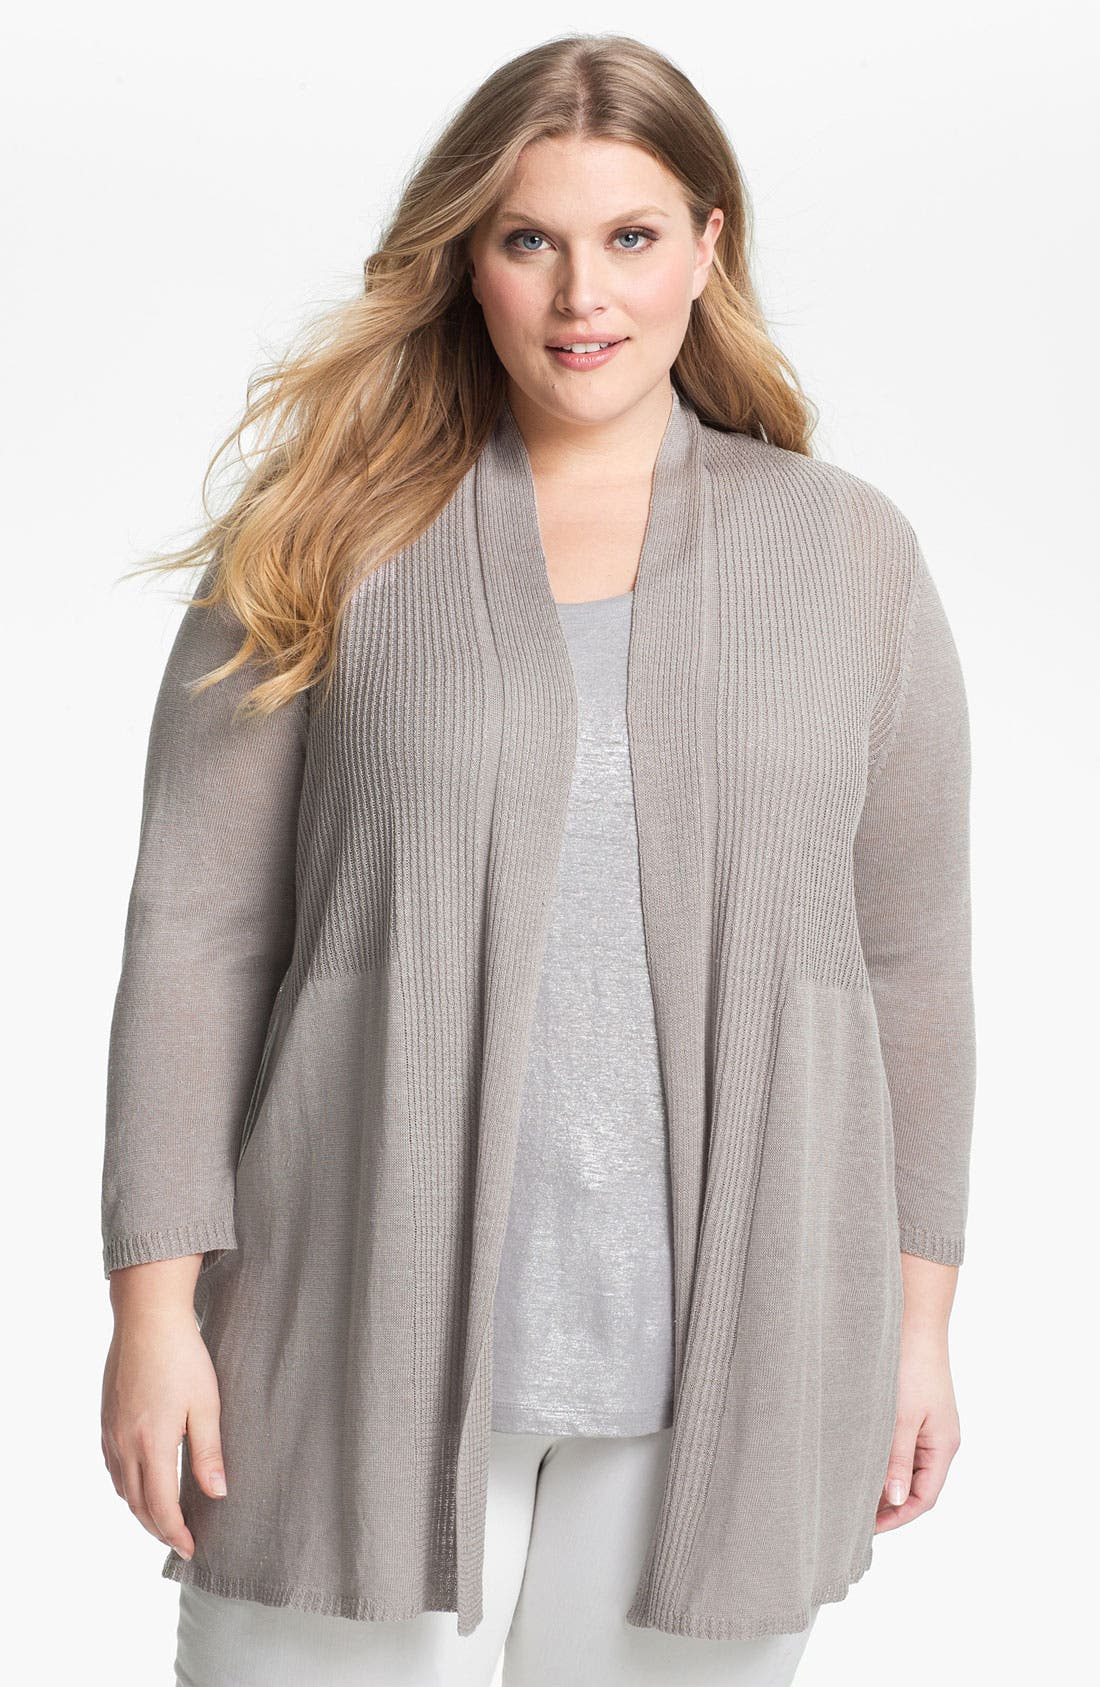 Main Image - Nic + Zoe Ribbed Cardigan (Plus Size)